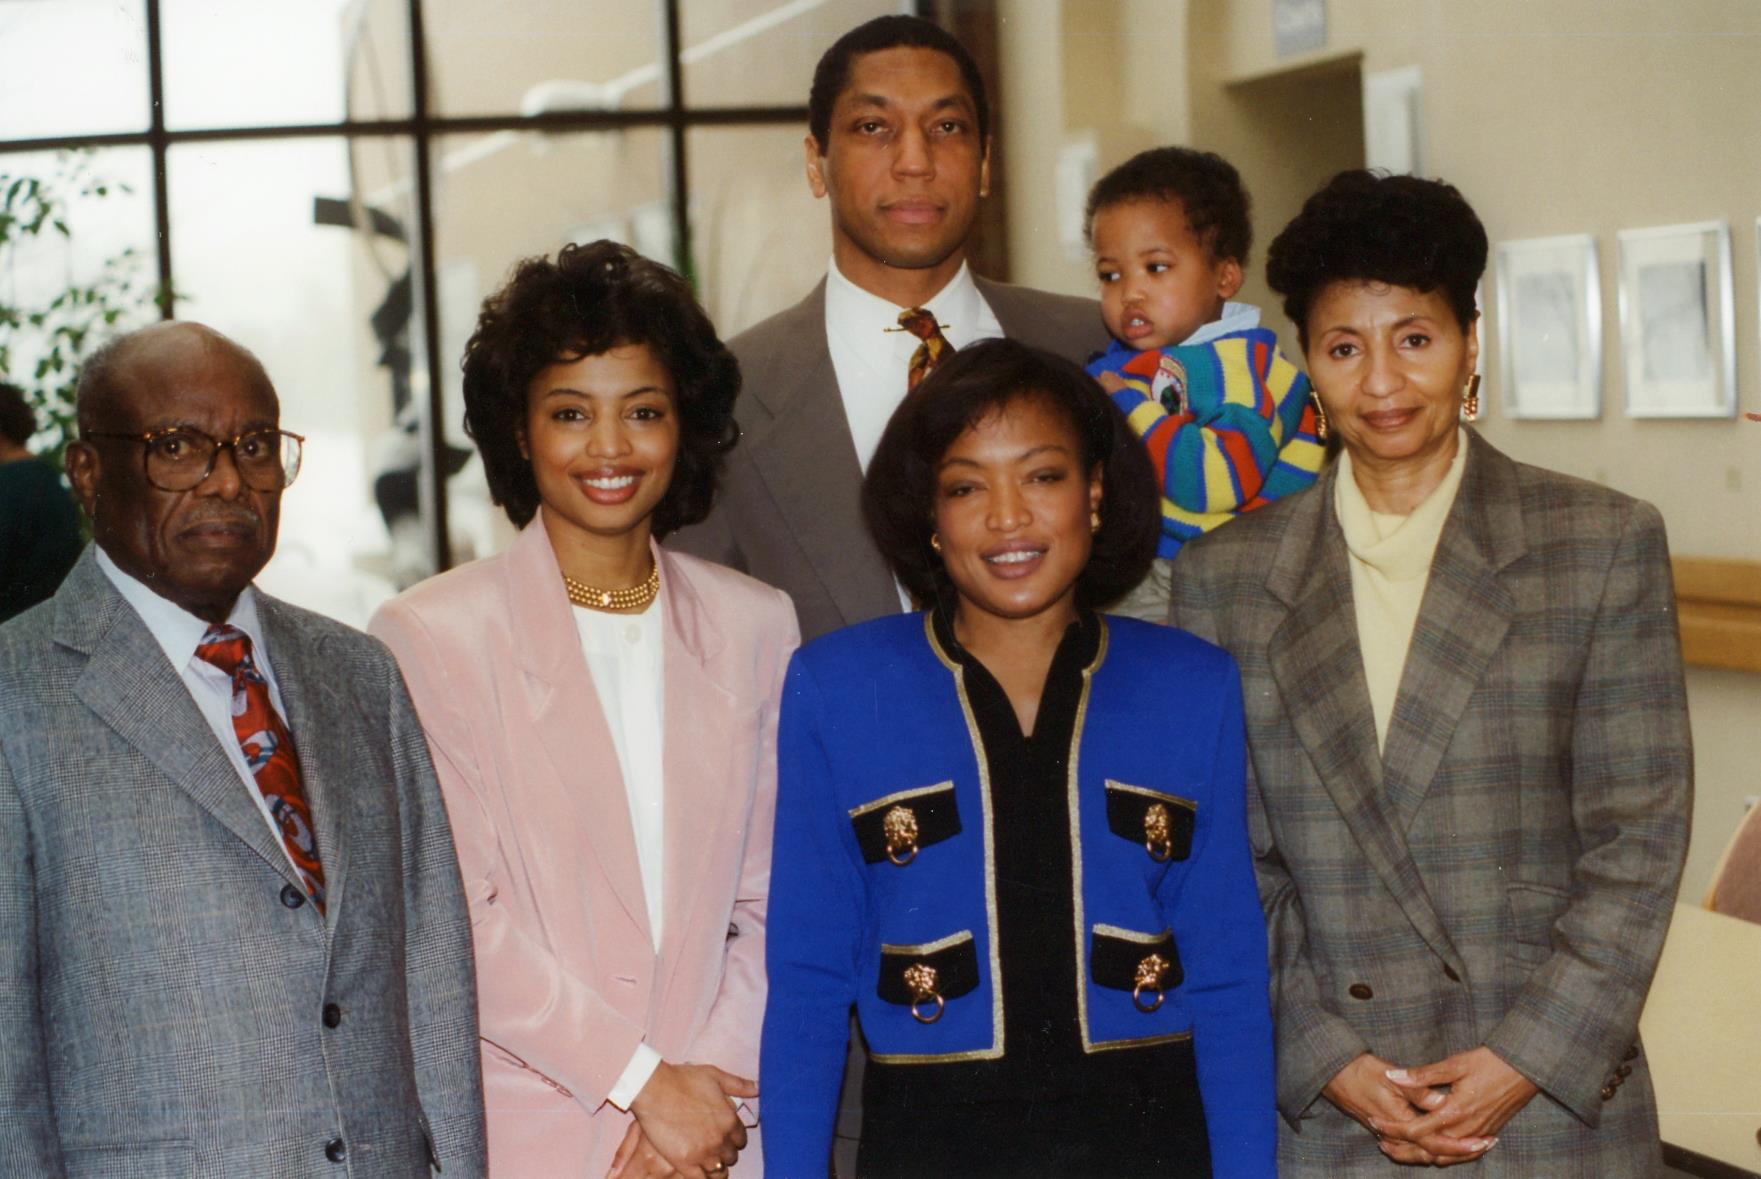 Divorce Court Judge Lynn Toler Husband